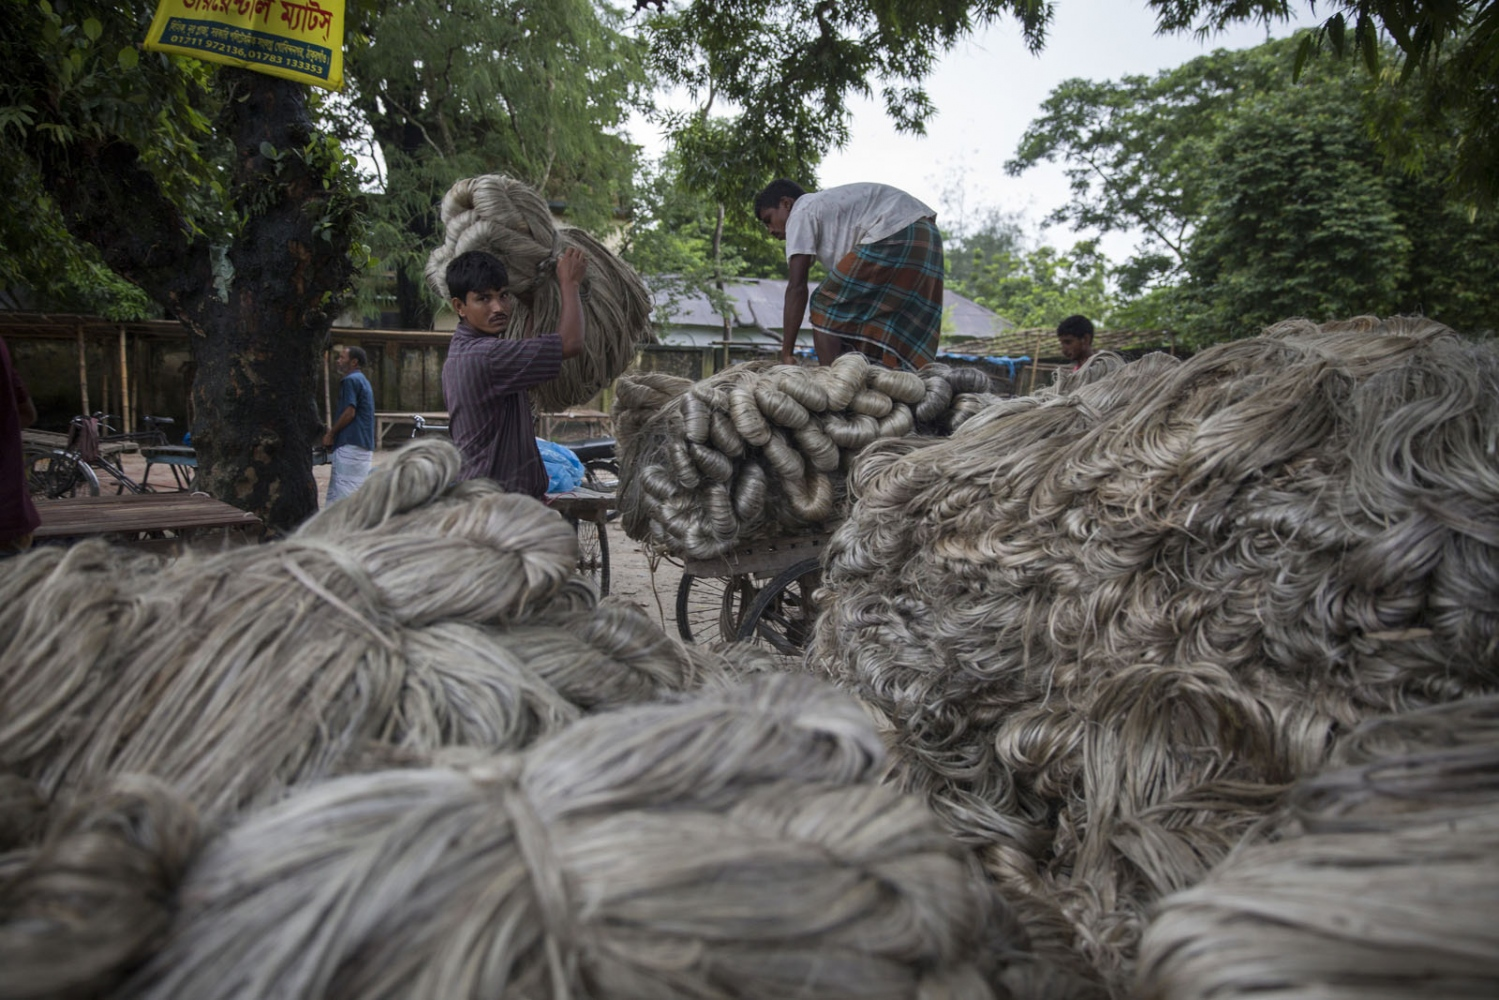 Every Saturday morning a large jute market is held in the main square of the town of Debiganj. From here the jute will be sold and transported to Dhaka. For the many inhabitants of the enclaves that surround the town, jute is where most of their income comes from and they will bring it here to sell. Jute is also known as the Golden Thread of Bangladesh is one of the largest industries in the country.